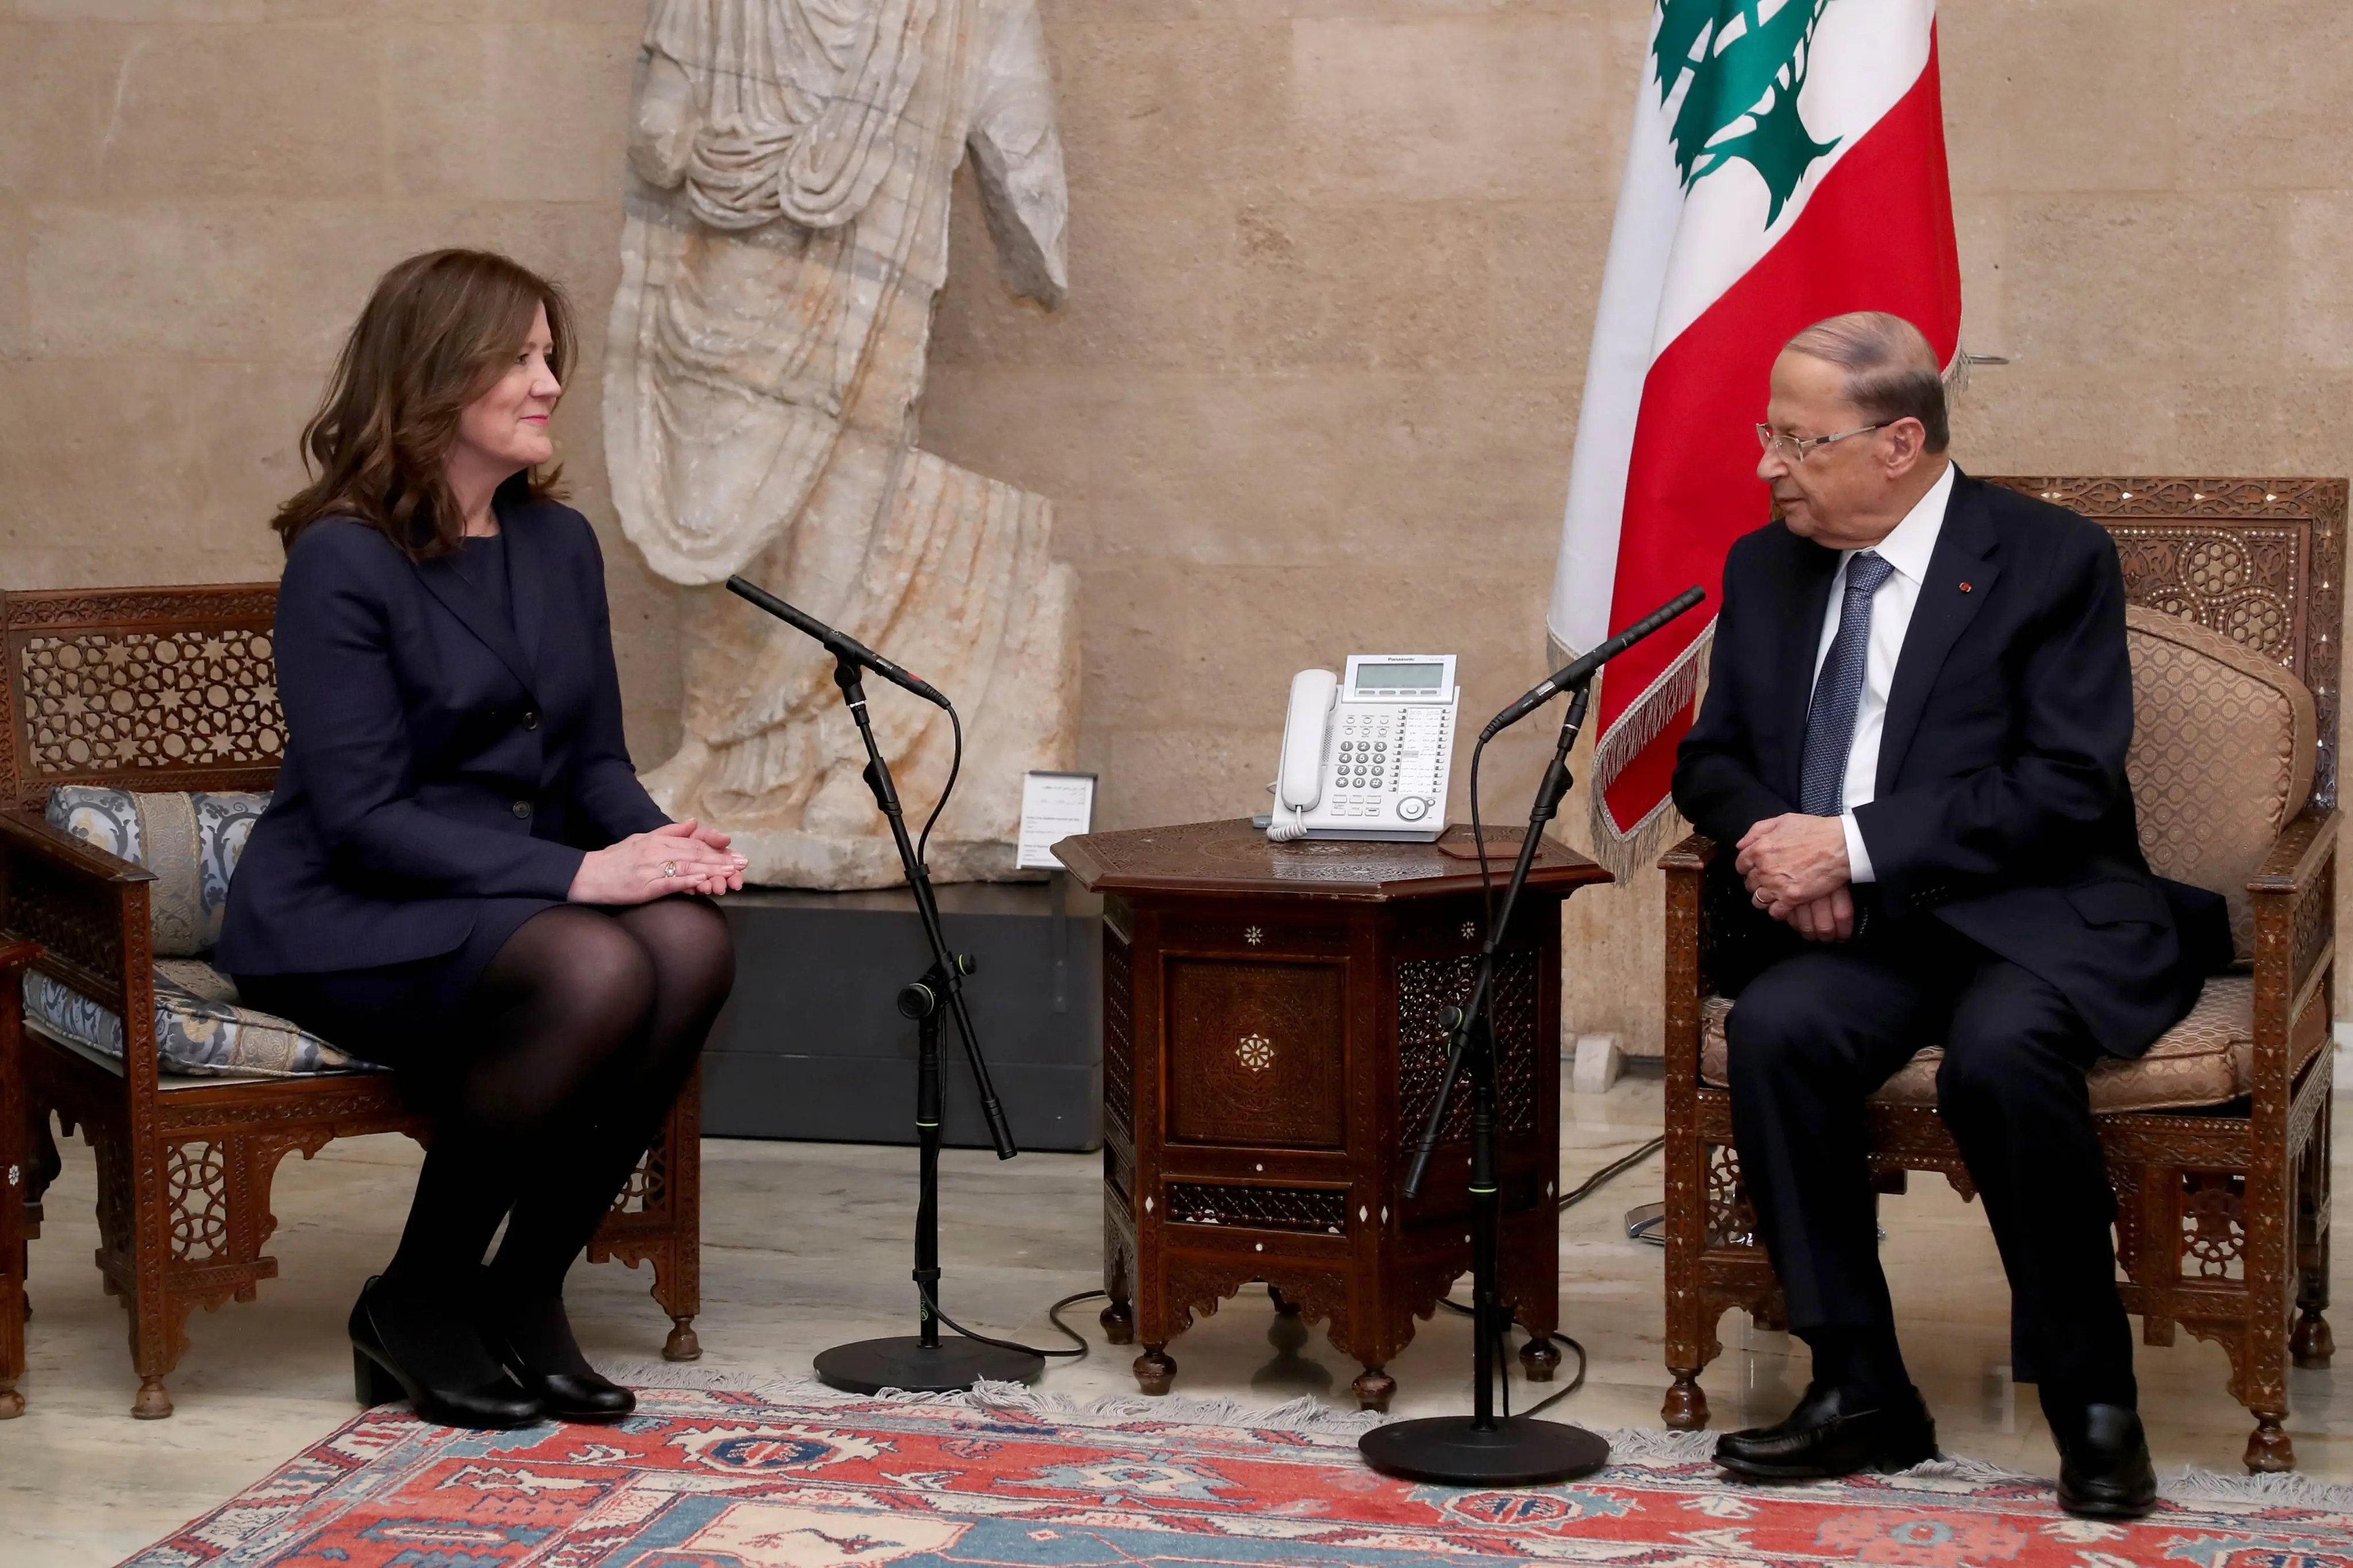 """U.S. Ambassador to Lebanon Dorothy Shea announced on Sunday that the United States plans to impose new sanctions against Hezbollah and possibly against supporters of the group, OTV local TV channel reported. """"New sanctions will be put in place starting June 1,"""" Shea said in a televised interview. Shea denied the U.S. intention to cause […]"""